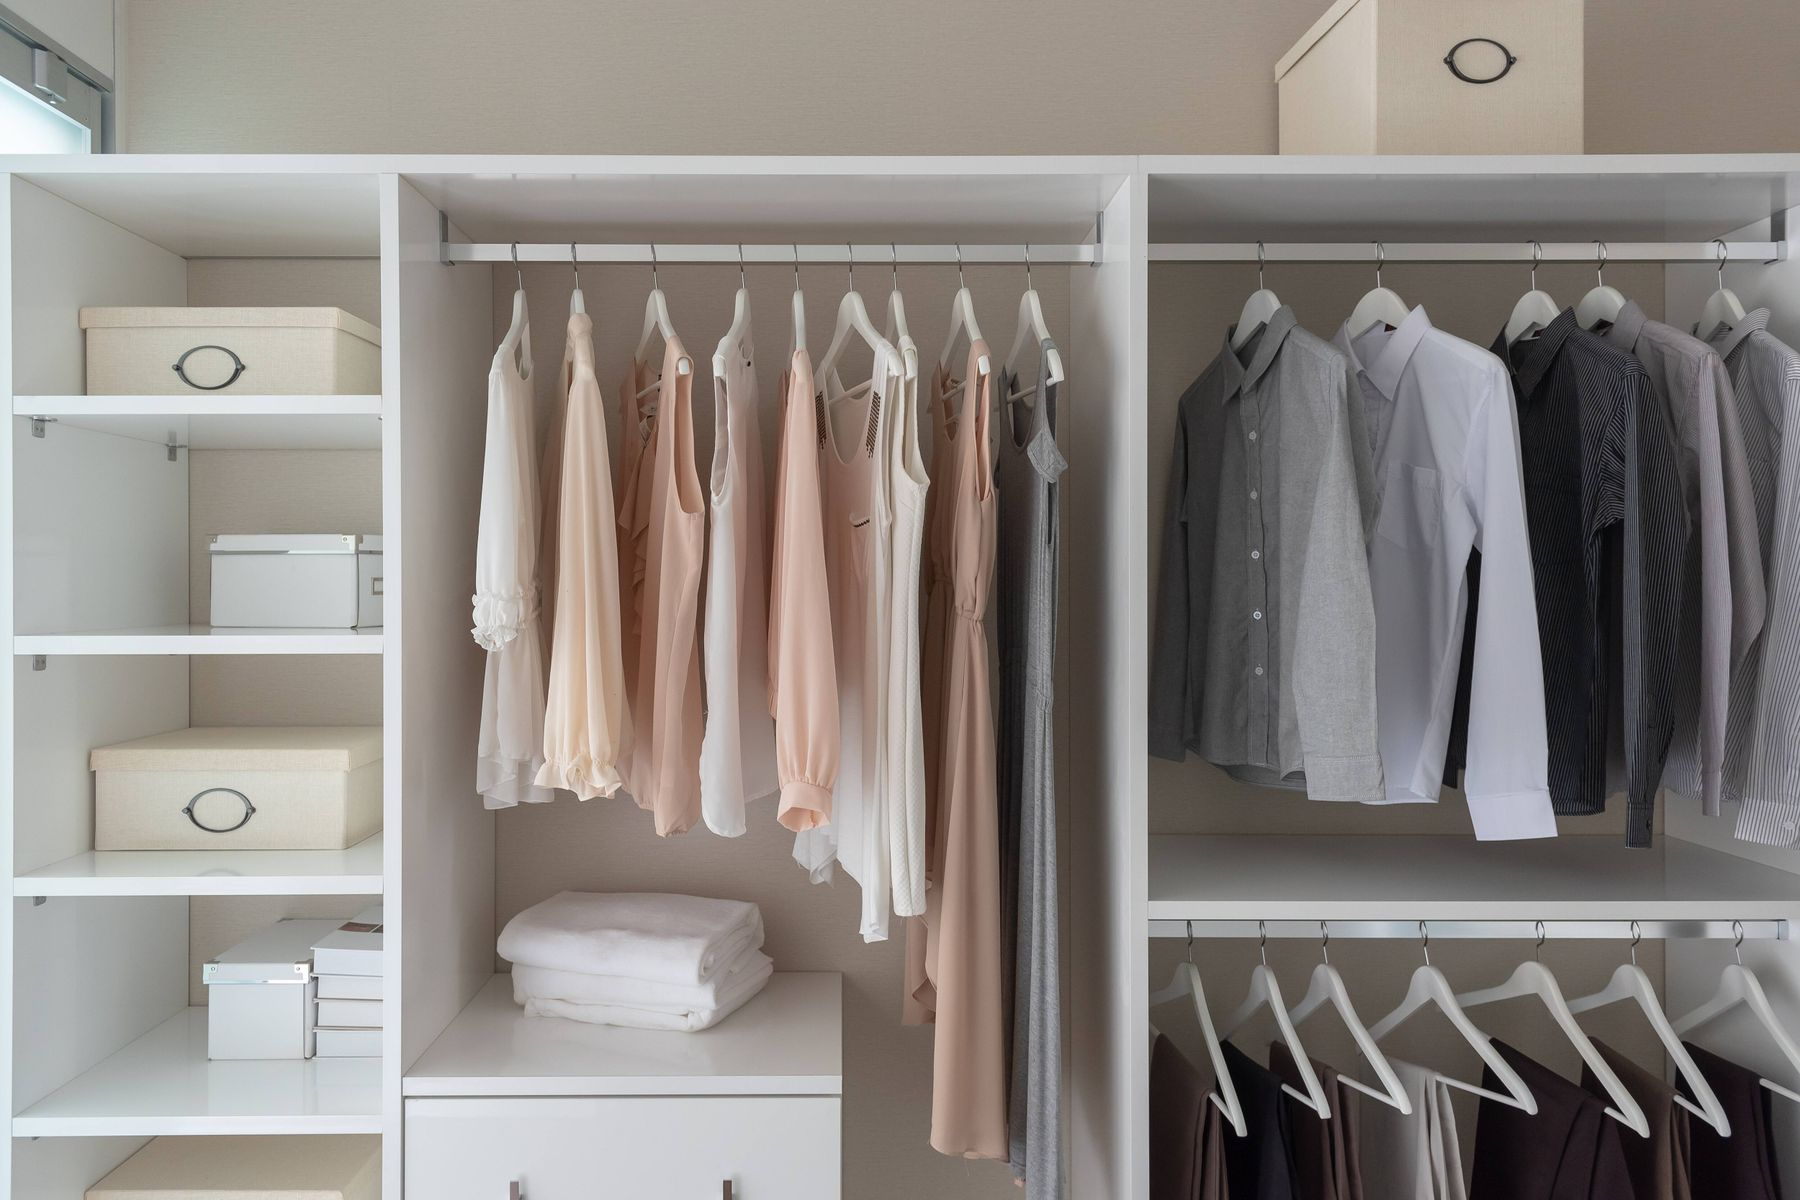 Renovating your house? Make space for a walk-in closet design